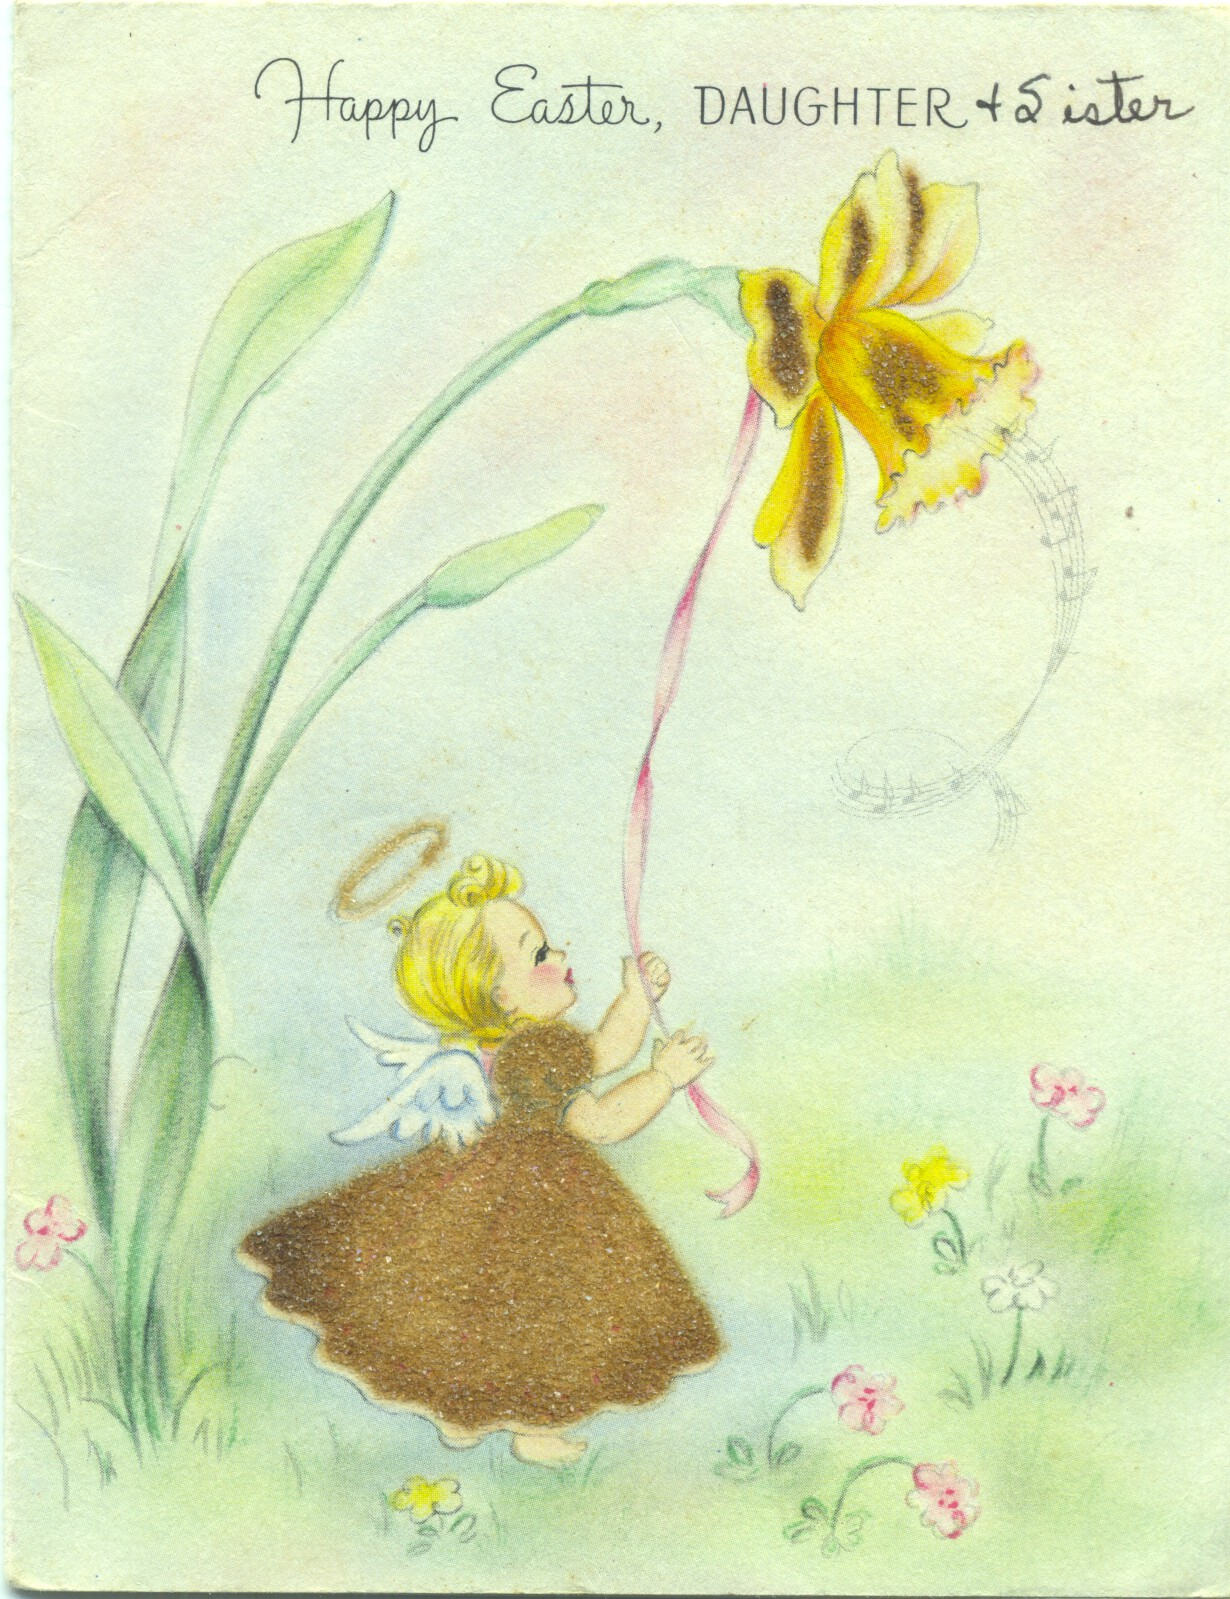 A 1945 Hallmark card to my mother from her mother and sister ... the brown skirt is fuzzy